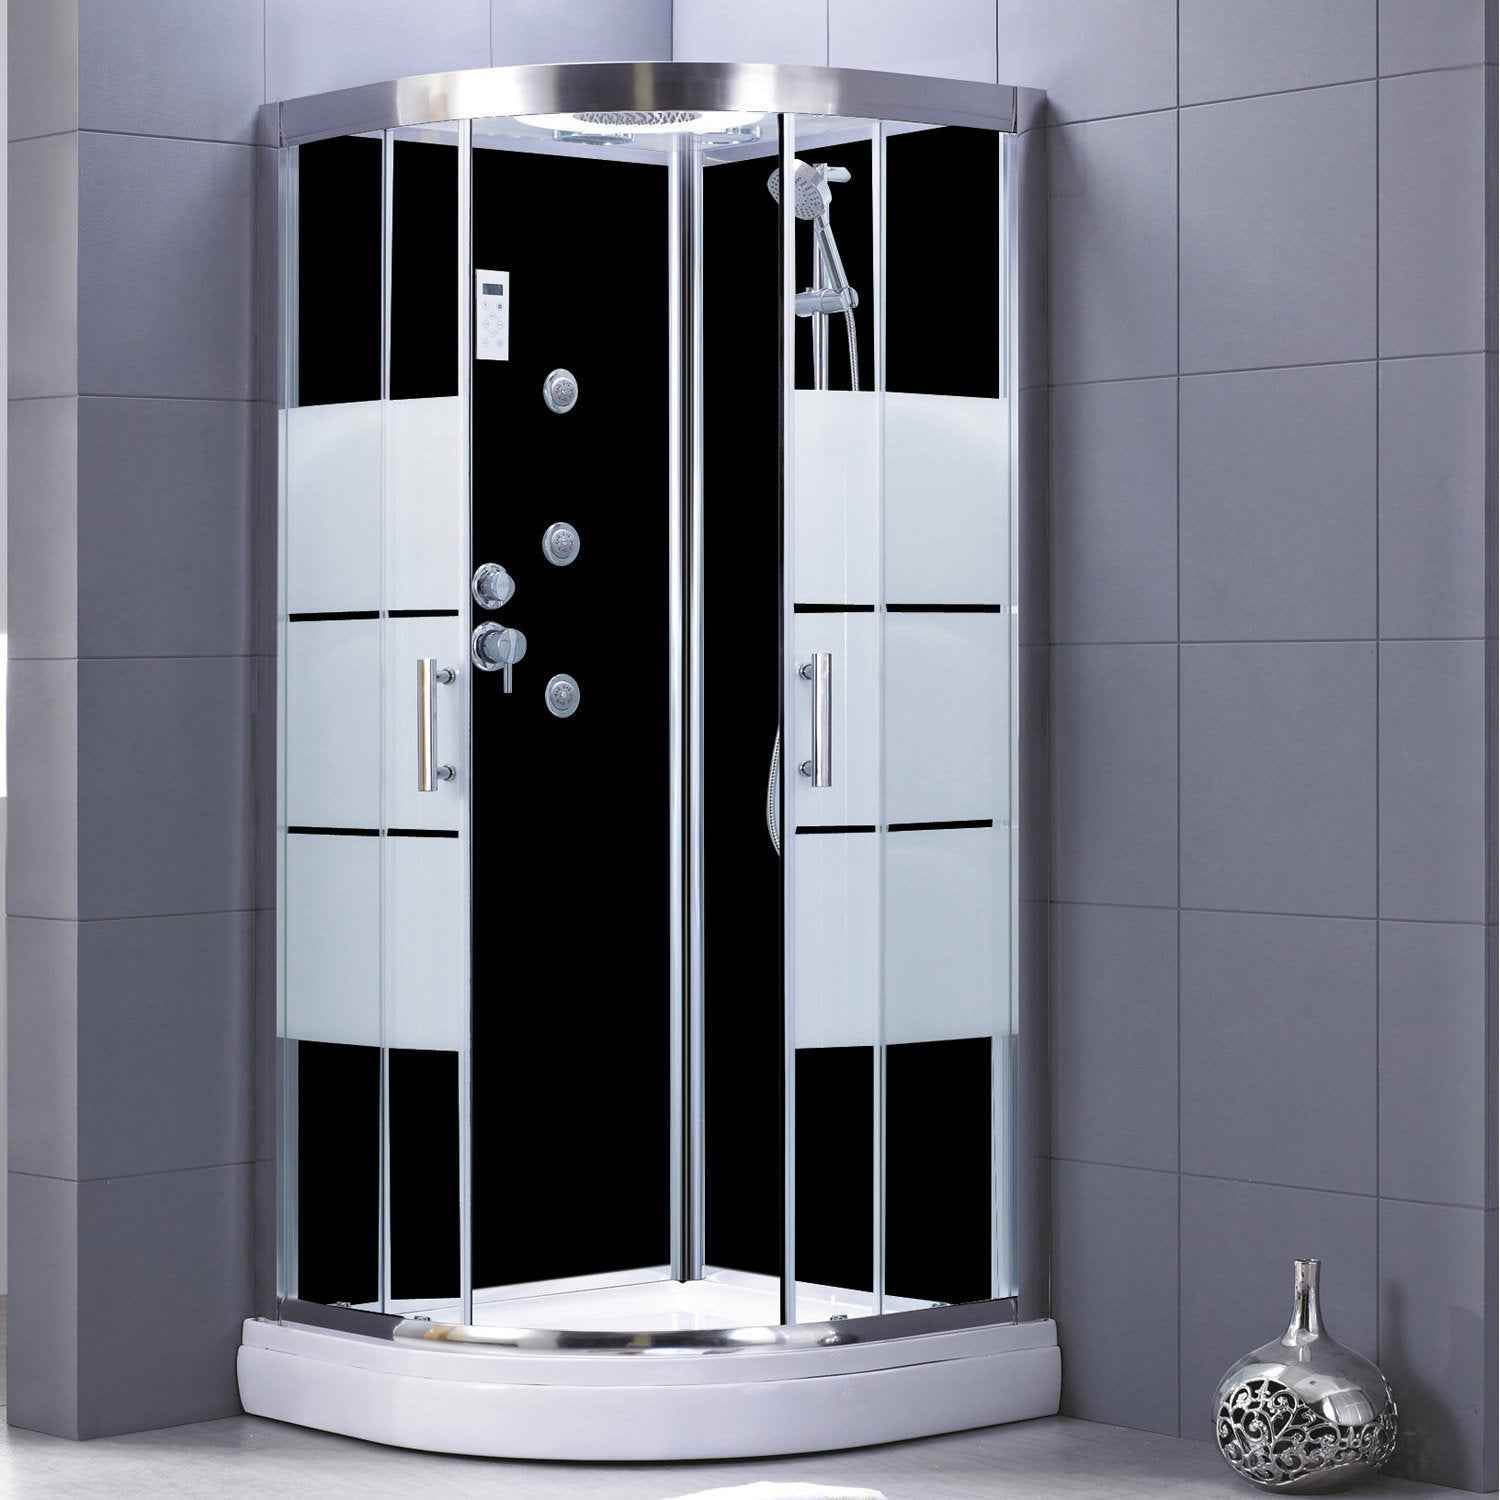 cabine de douche 1 4 de cercle 90x90 cm optima2 noire. Black Bedroom Furniture Sets. Home Design Ideas